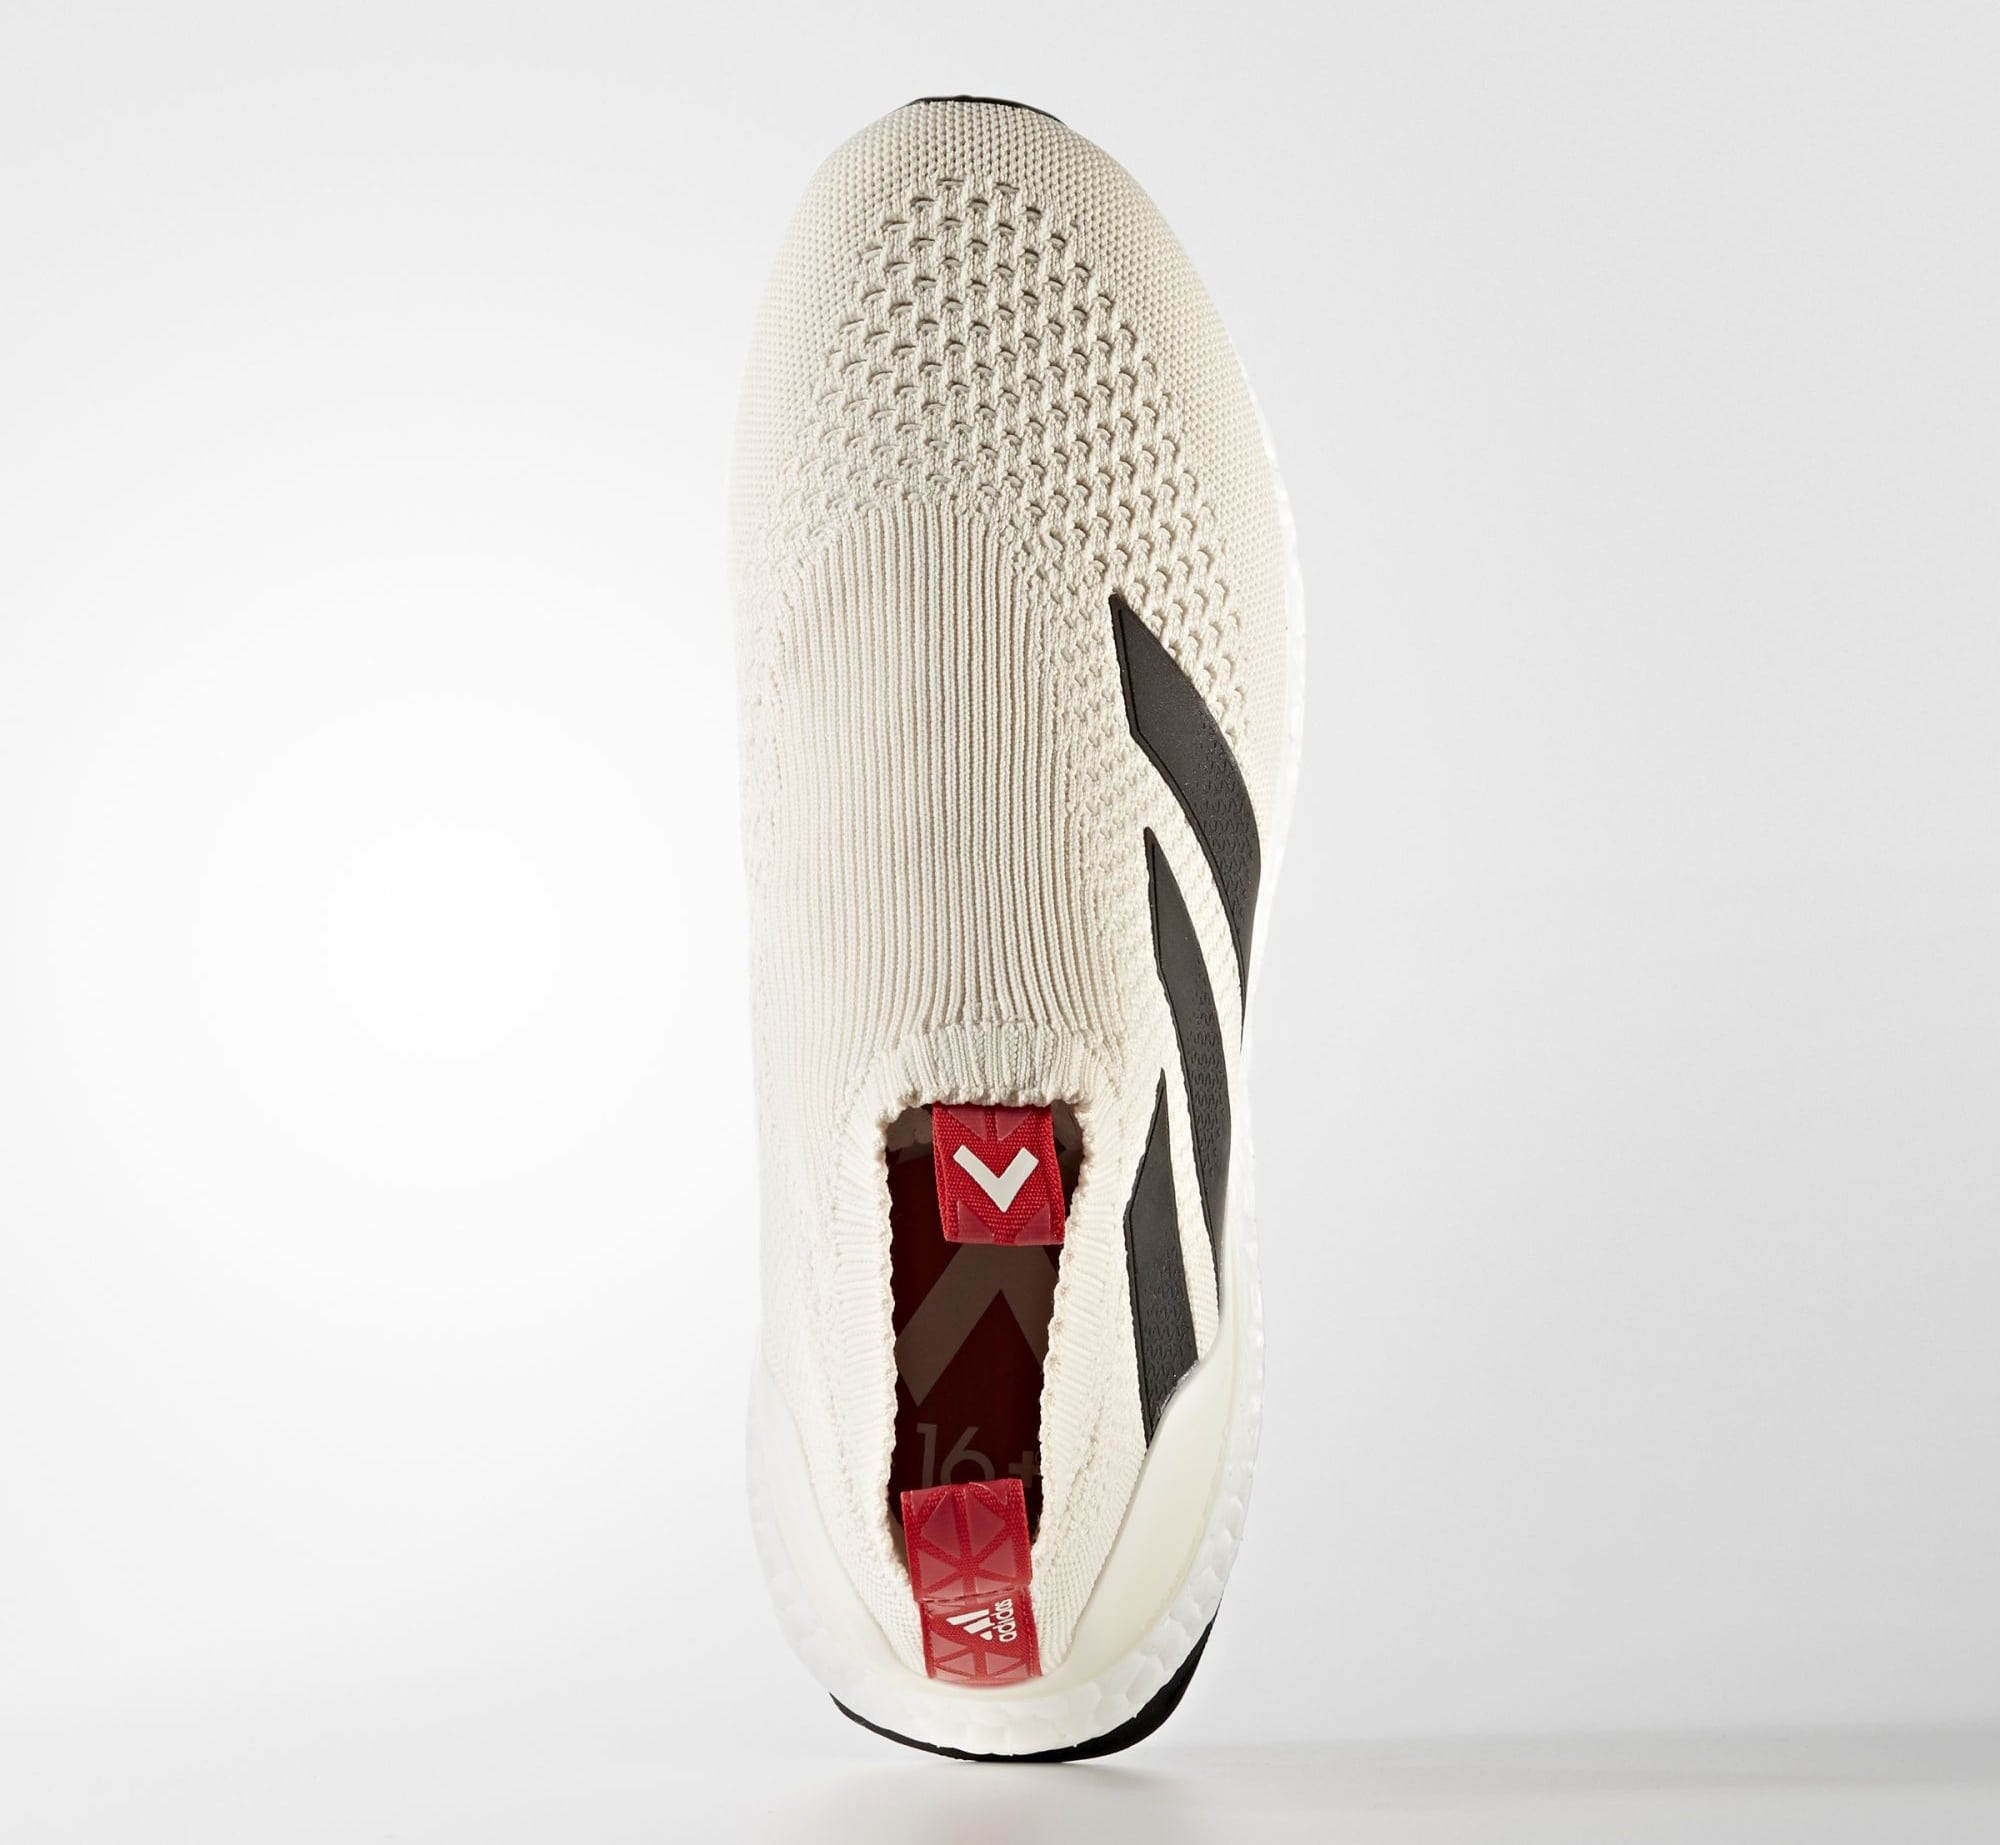 uk availability 56a05 94f50 The adidas champagne pack is now available in the U.S. on adidas.com and at  select retailers nationwide.